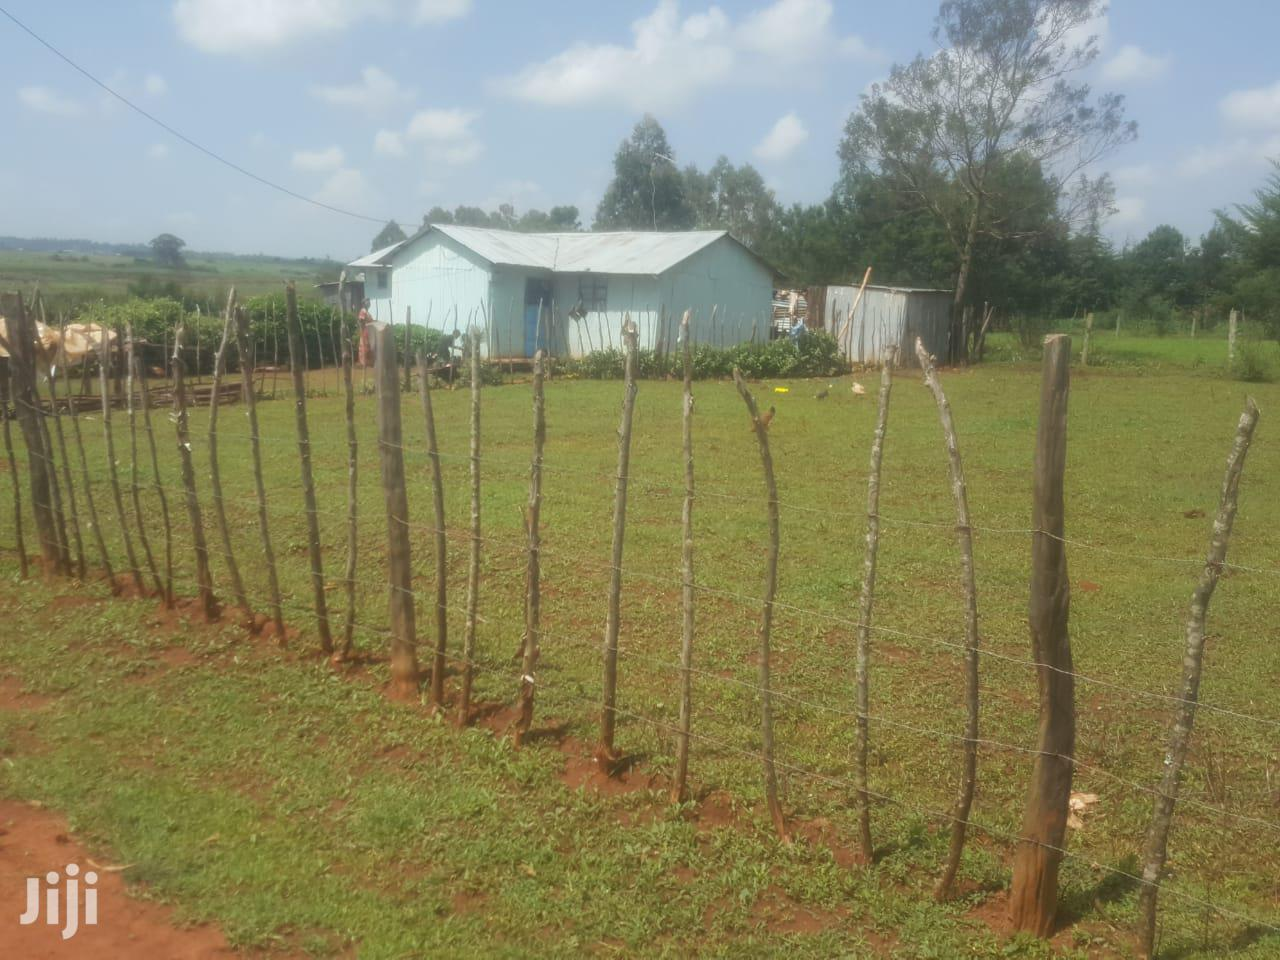 Affordable 1/4 Plot for Sale in Chepkanga Eldoret | Land & Plots For Sale for sale in Eldoret CBD, Uasin Gishu, Kenya